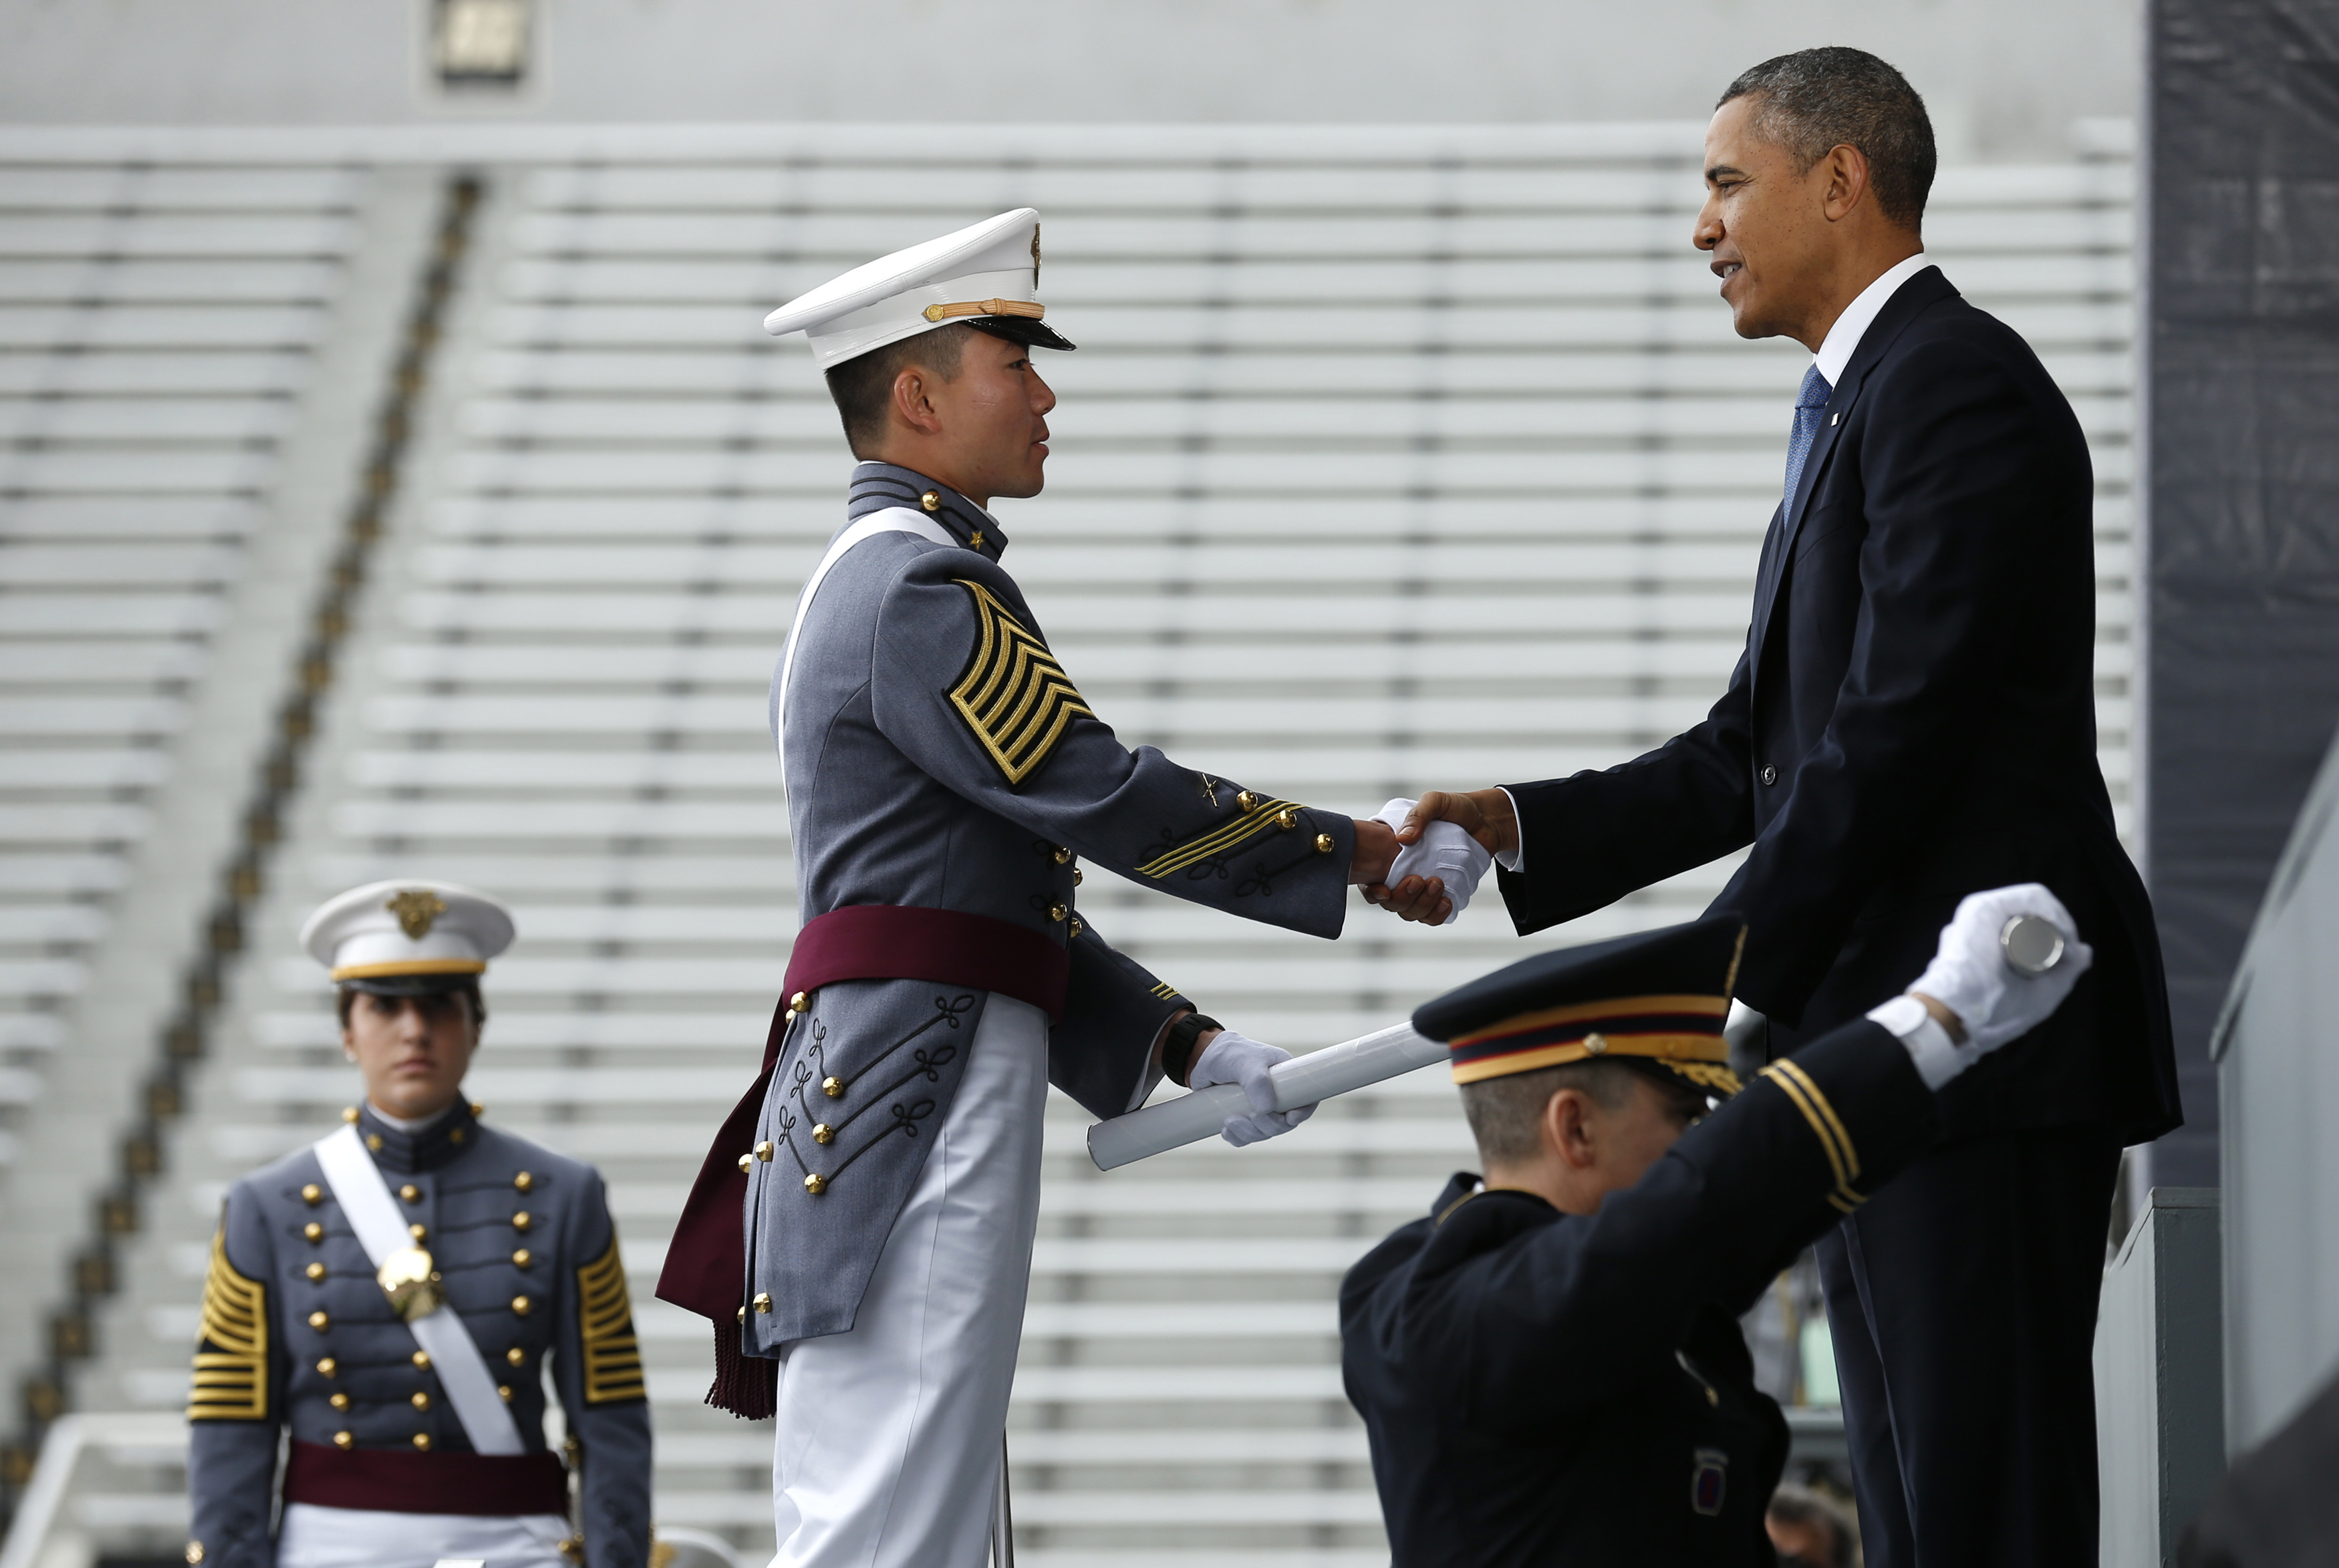 President Barack Obama hands a diploma to one of about 1,000 graduating cadets at the U.S. Military Academy at West Point, New York, on May 28. Obama's commencement address is one of several the White House plans to lay out his foreign policy vision for the remainder of his term in office. REUTERS/Kevin Lamarque